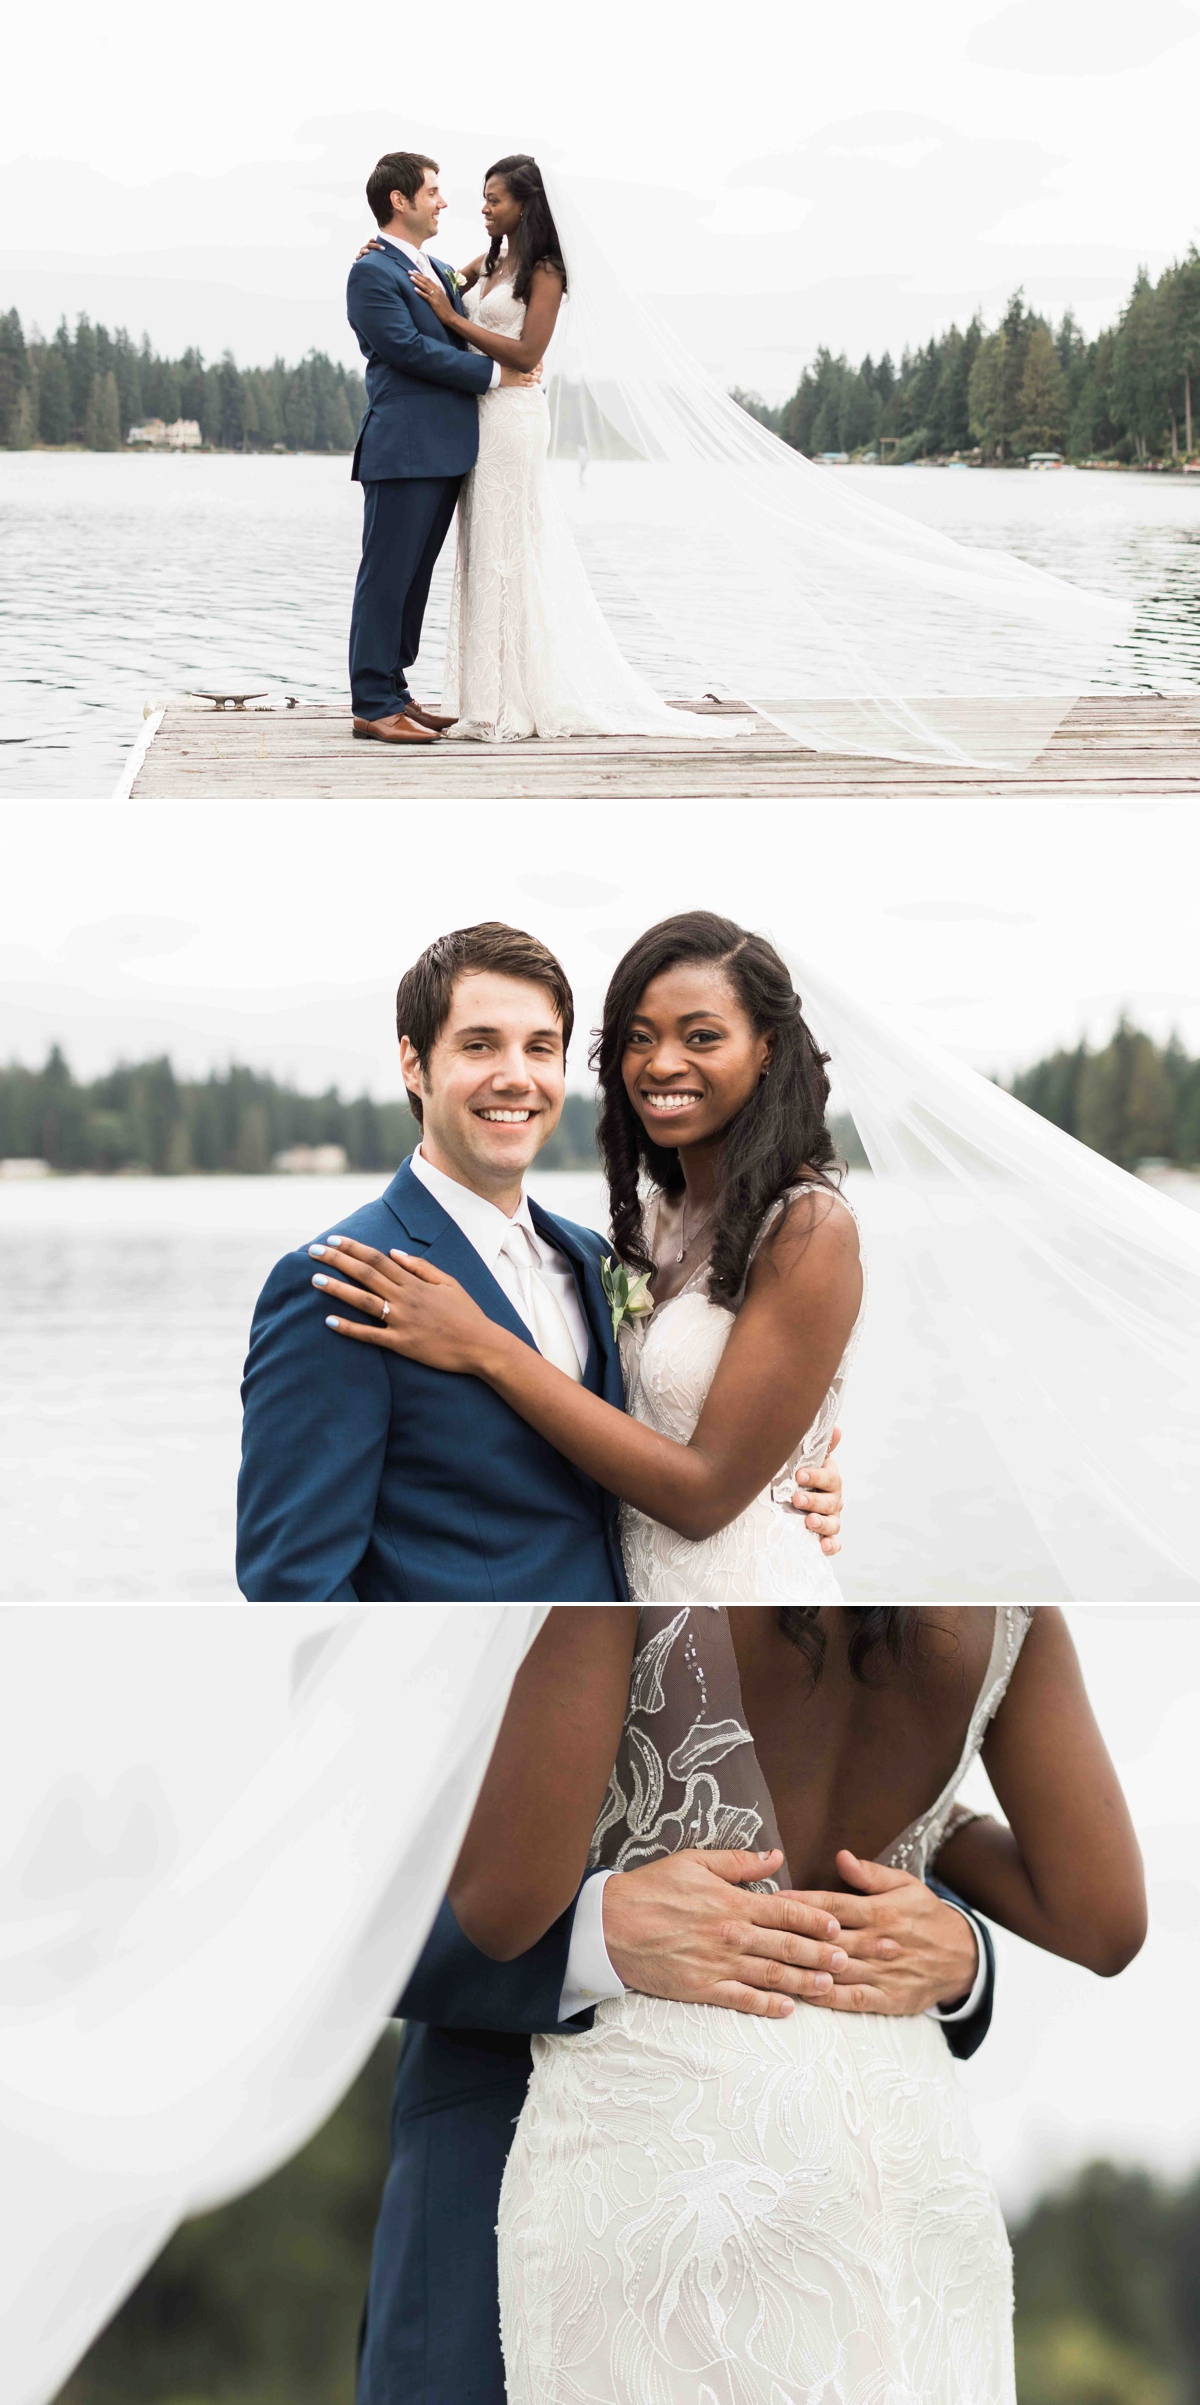 The happy married couple at Green Gates at Flowing Lake. Photographs by Joanna Monger Photography, Award Winning Snohomish Wedding Photographer.